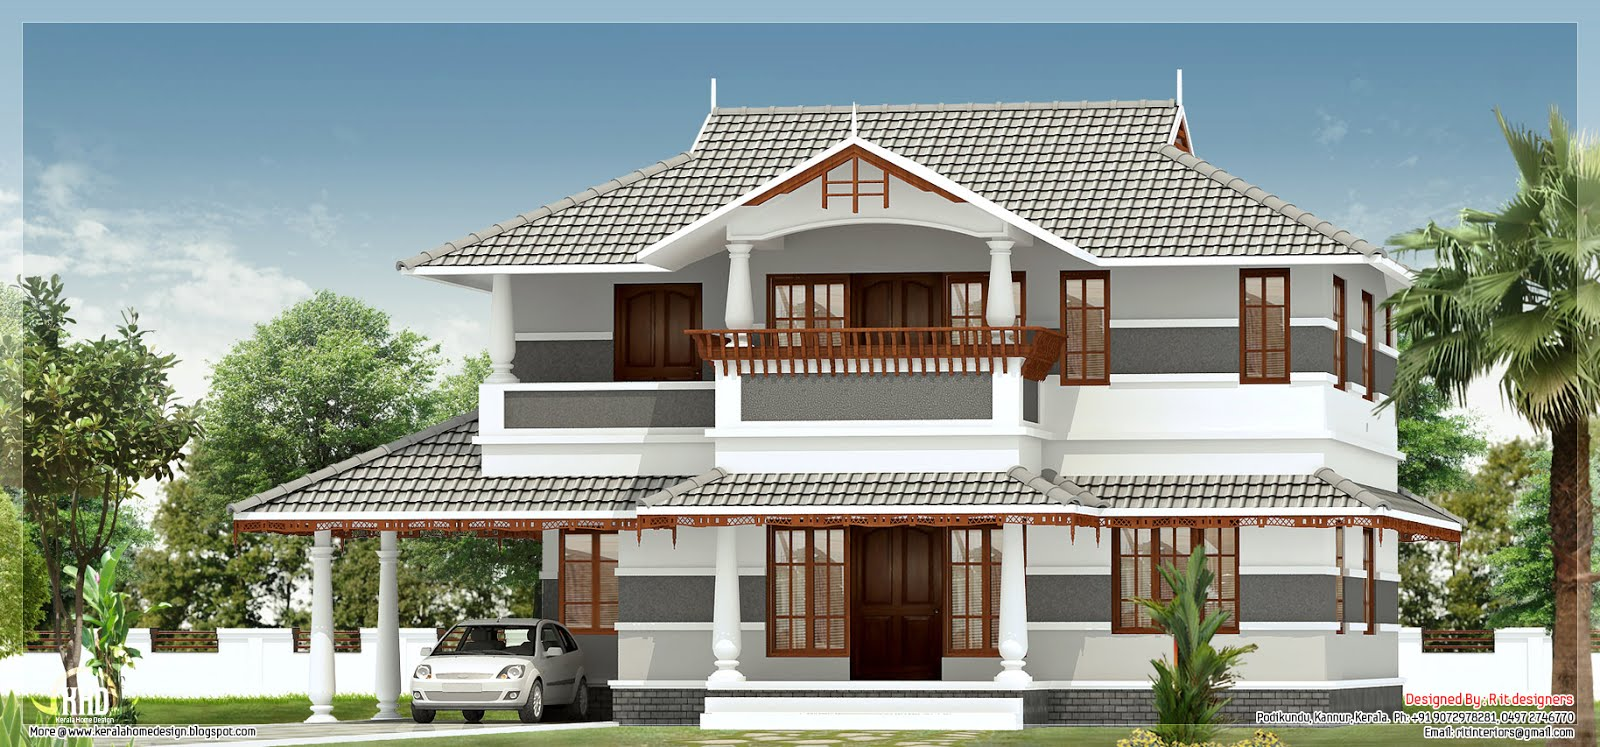 bedroom villa design by r it designers kannur kerala